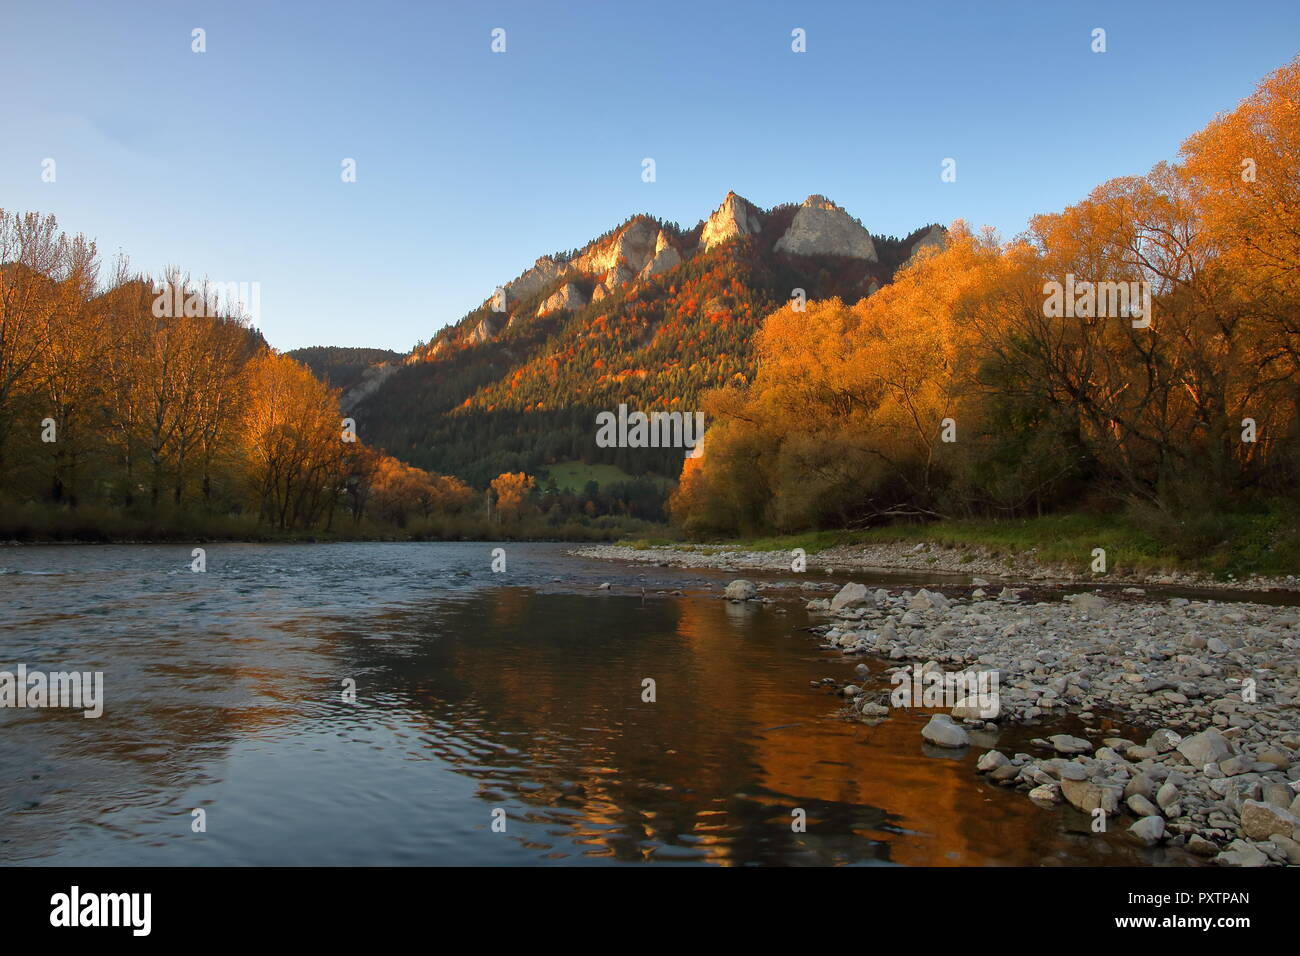 Autumnal landscape with Three Crowns massif in Pieniny mountains, Poland, Dunajec river with white stones on its riverbed, sunset light. - Stock Image